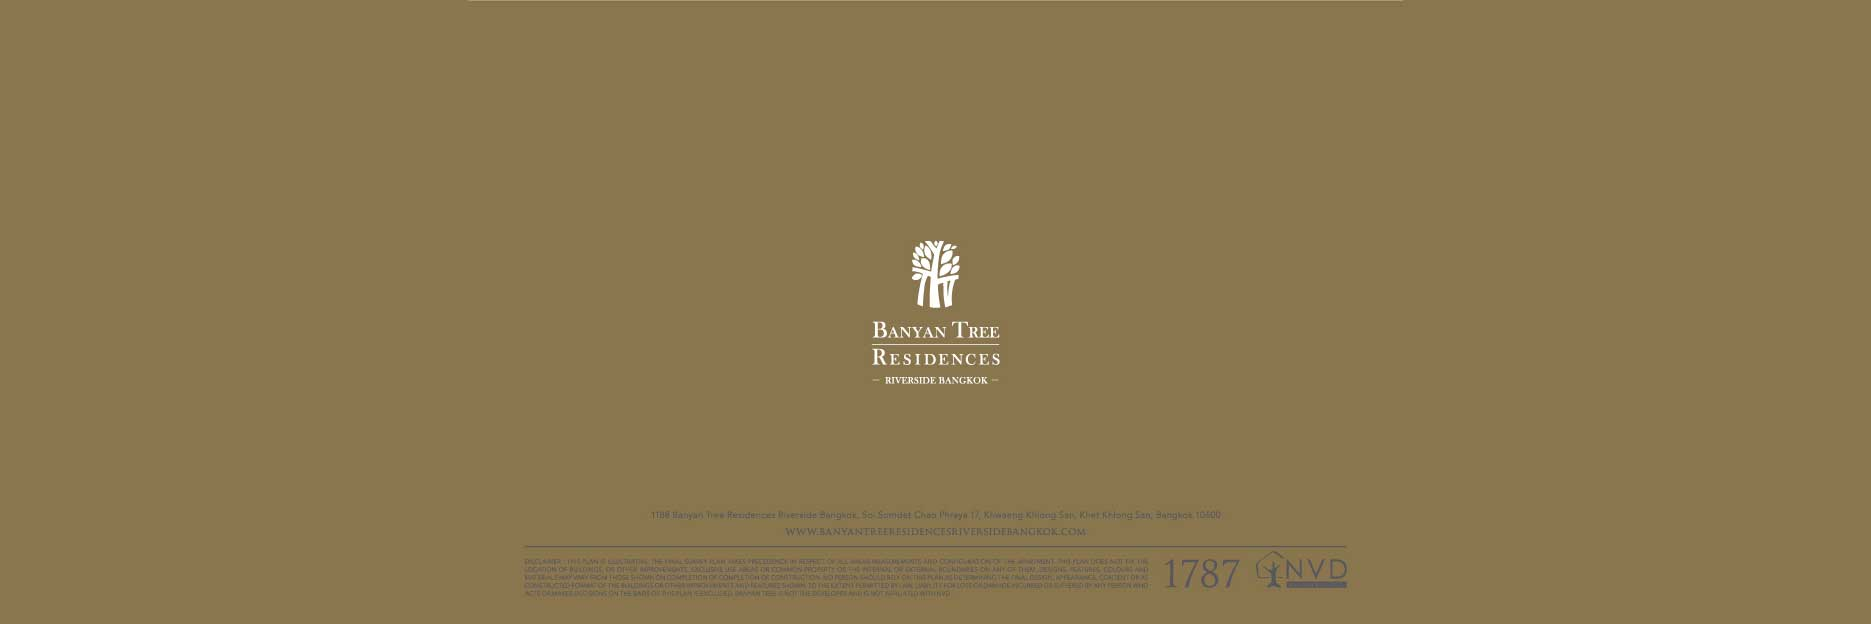 Banyan Tree Residences Riverside Bangkok Brochure 39